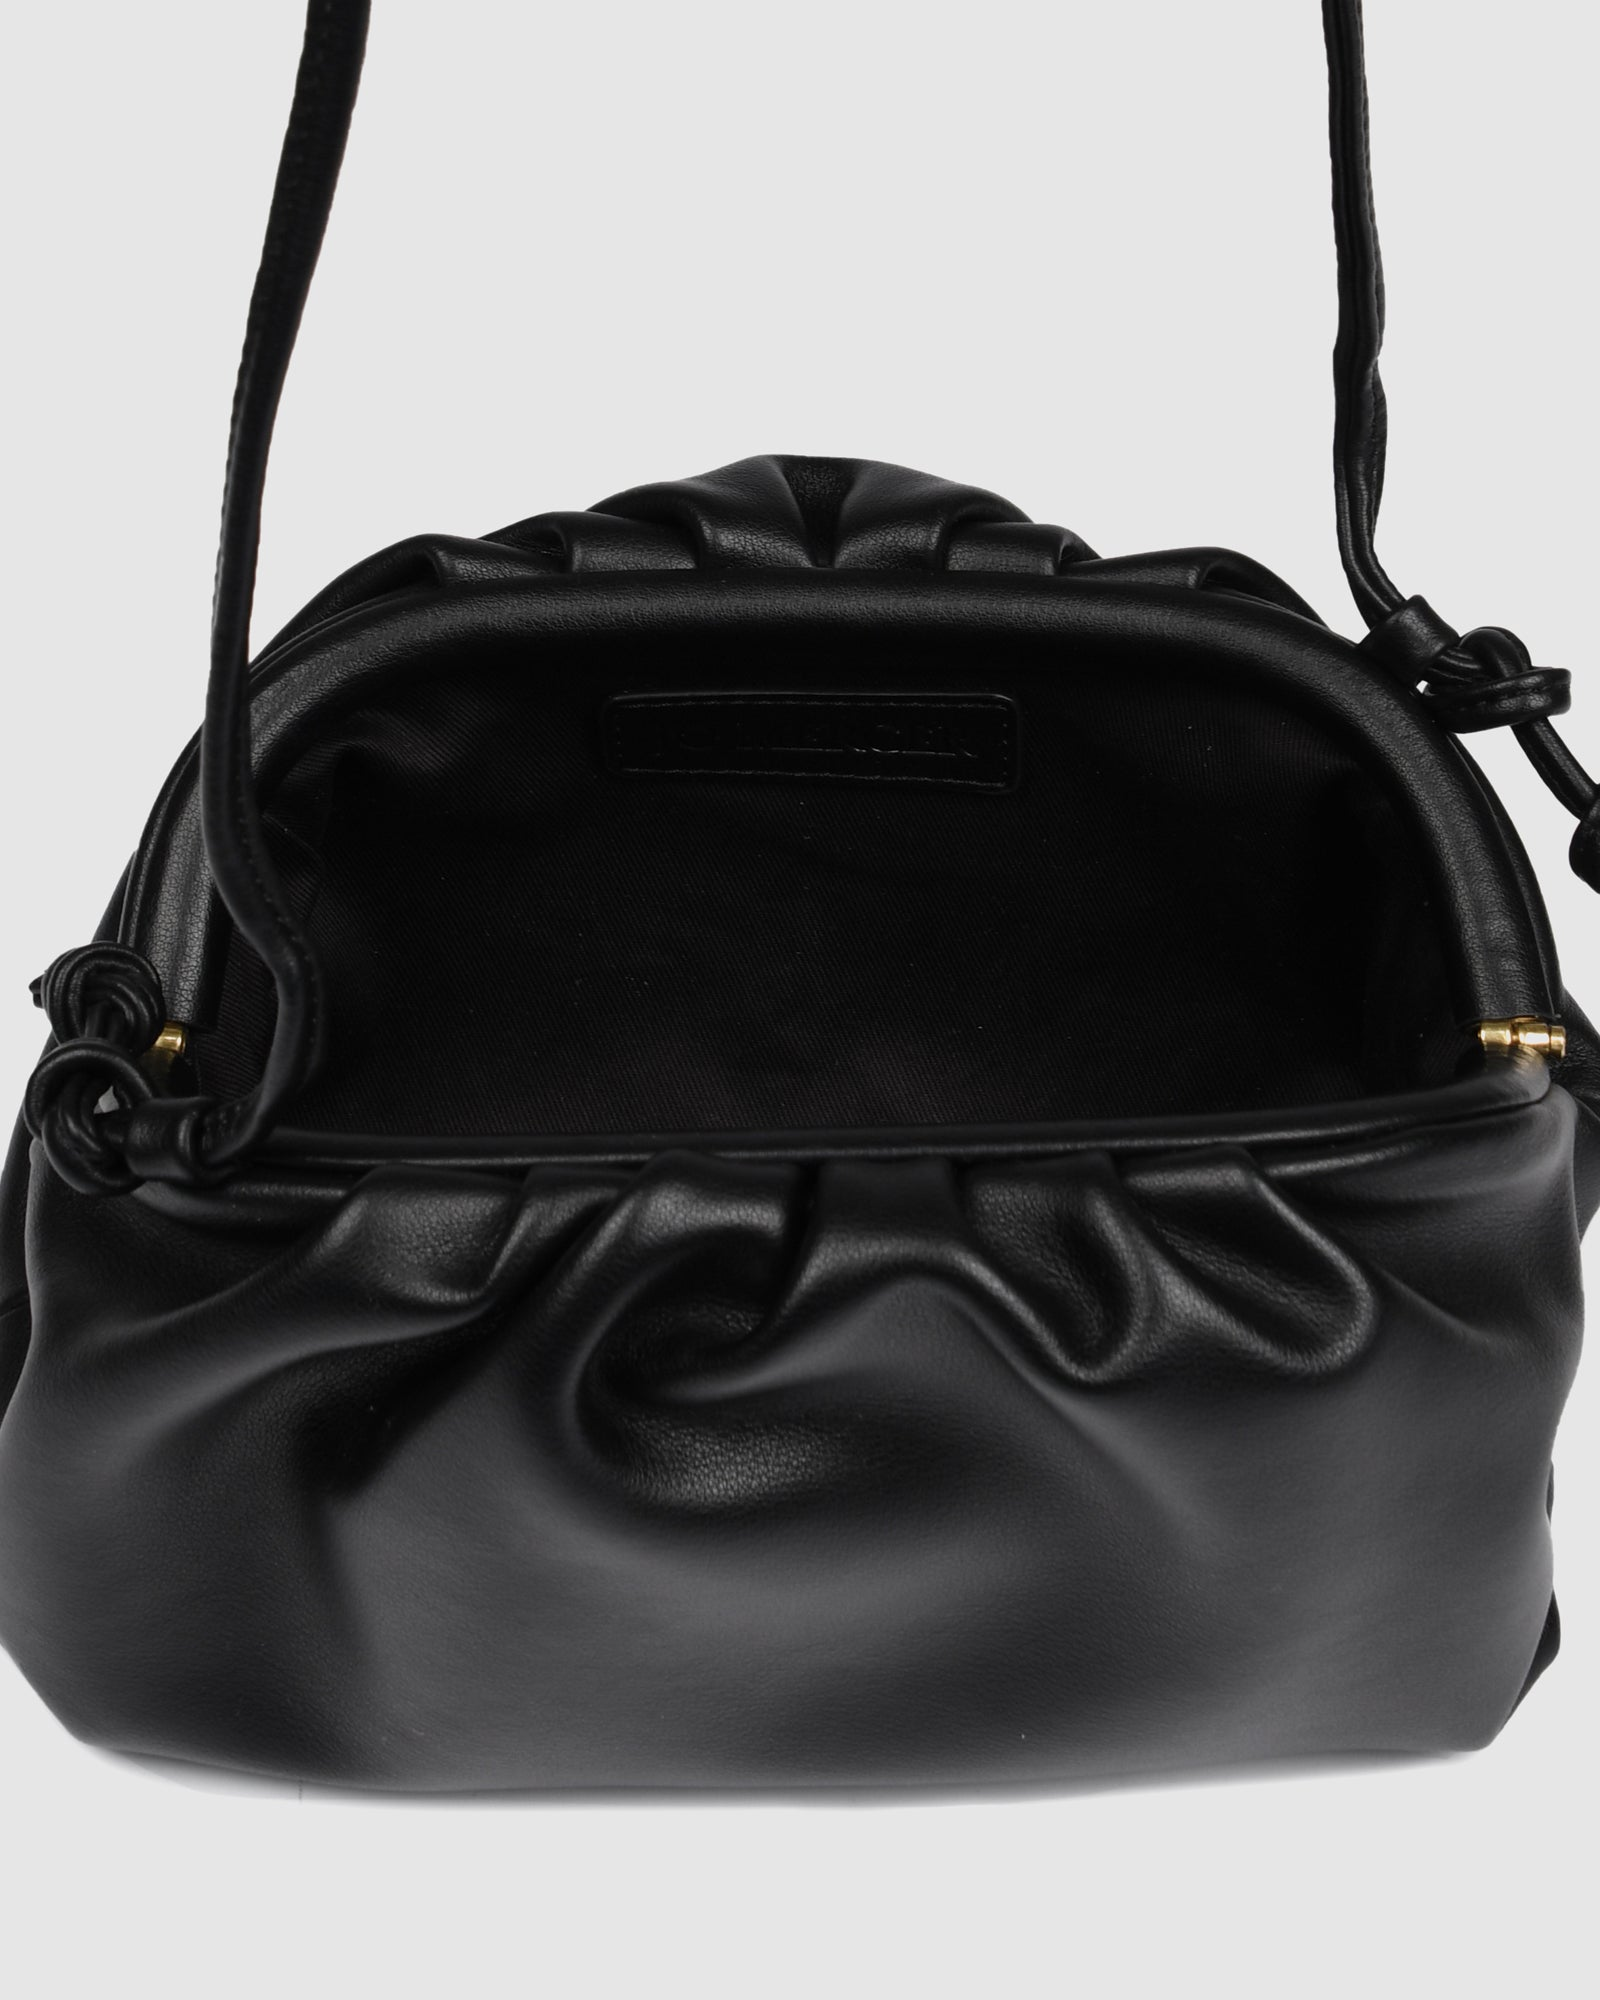 BAMBIE CROSS BODY BAG BLACK LEATHER